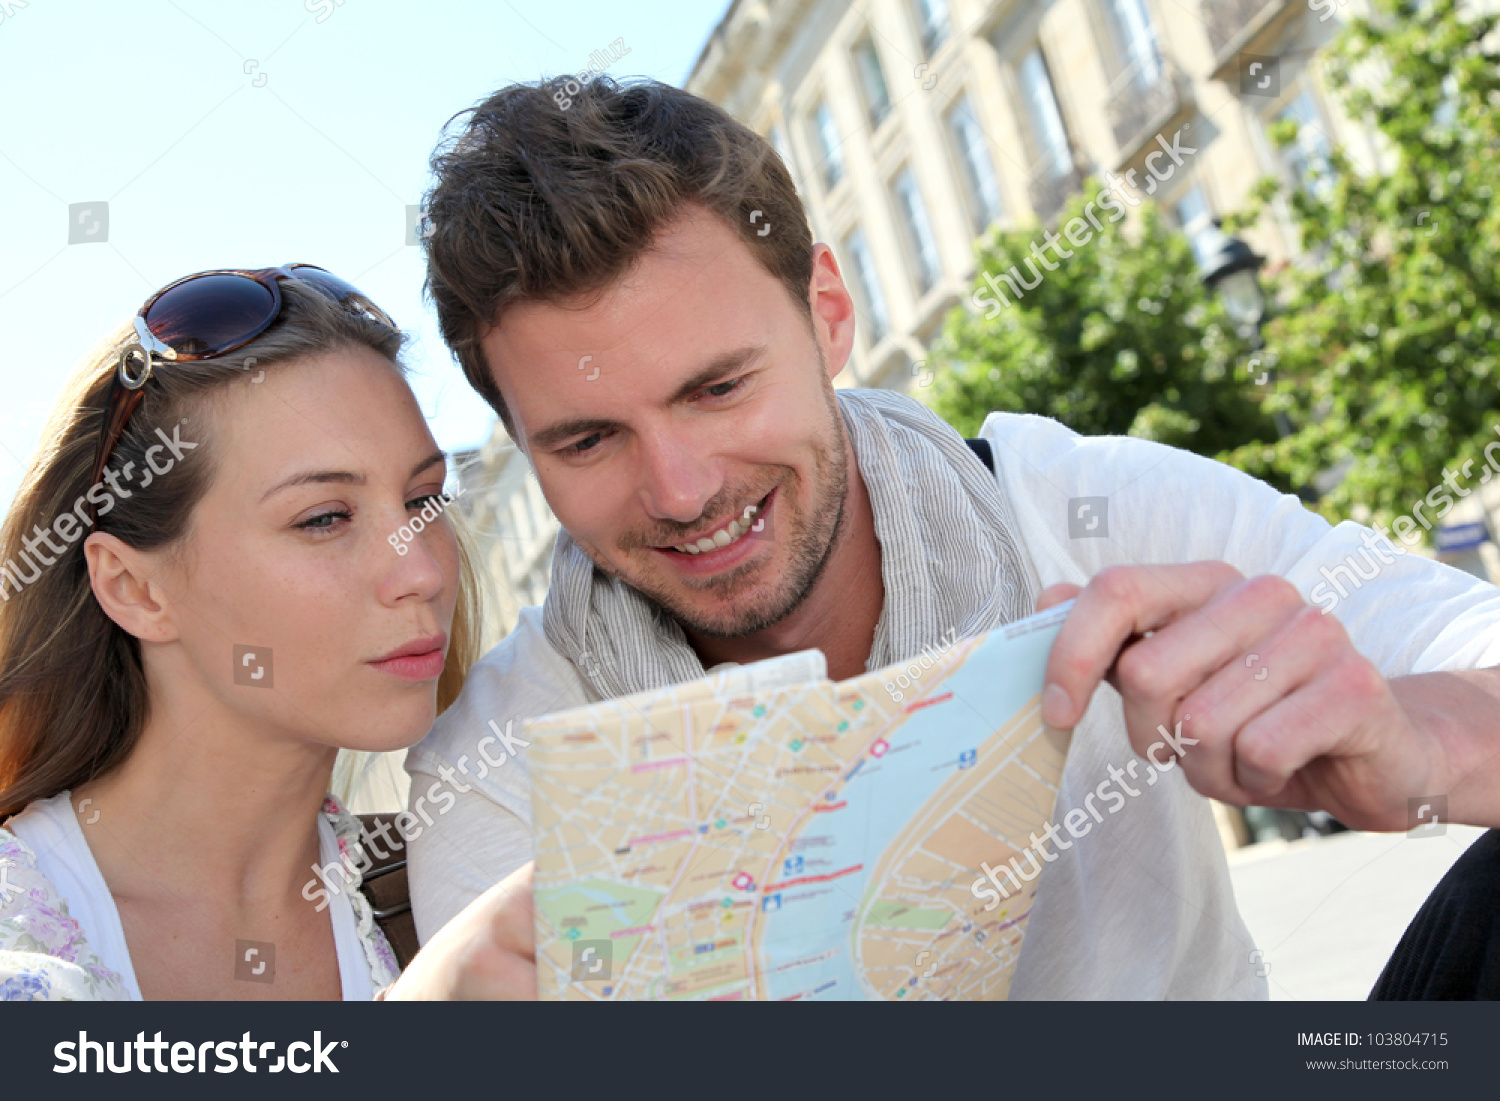 Couple Of Tourists Looking At City Tour Map Stock Photo ...